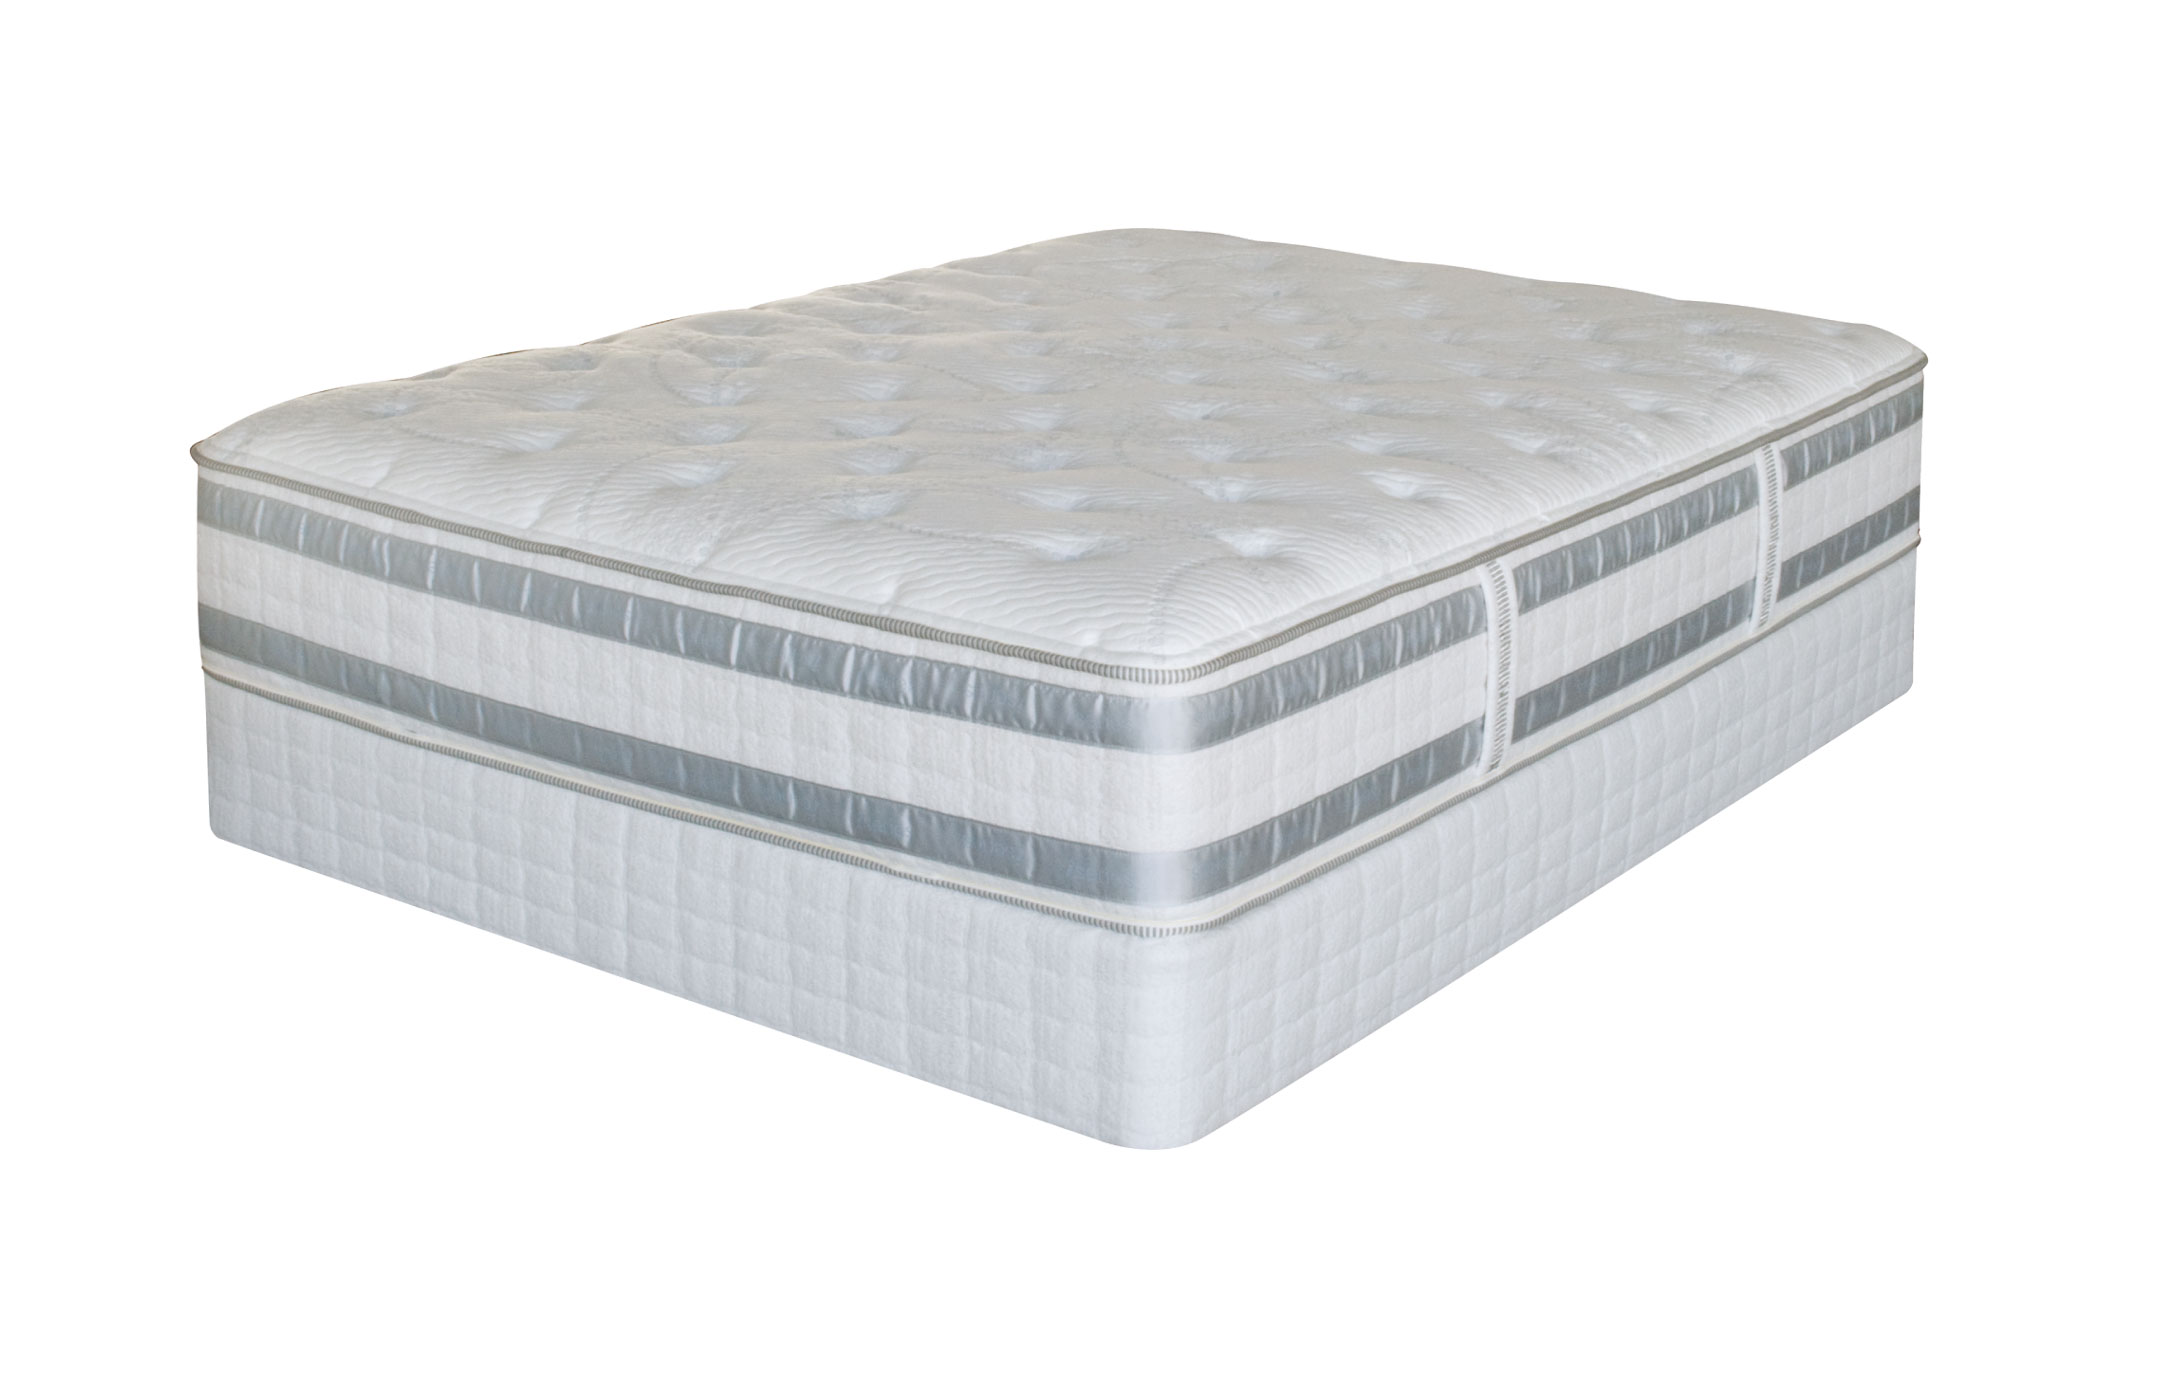 Serta Memory Foam Mattress Reviews